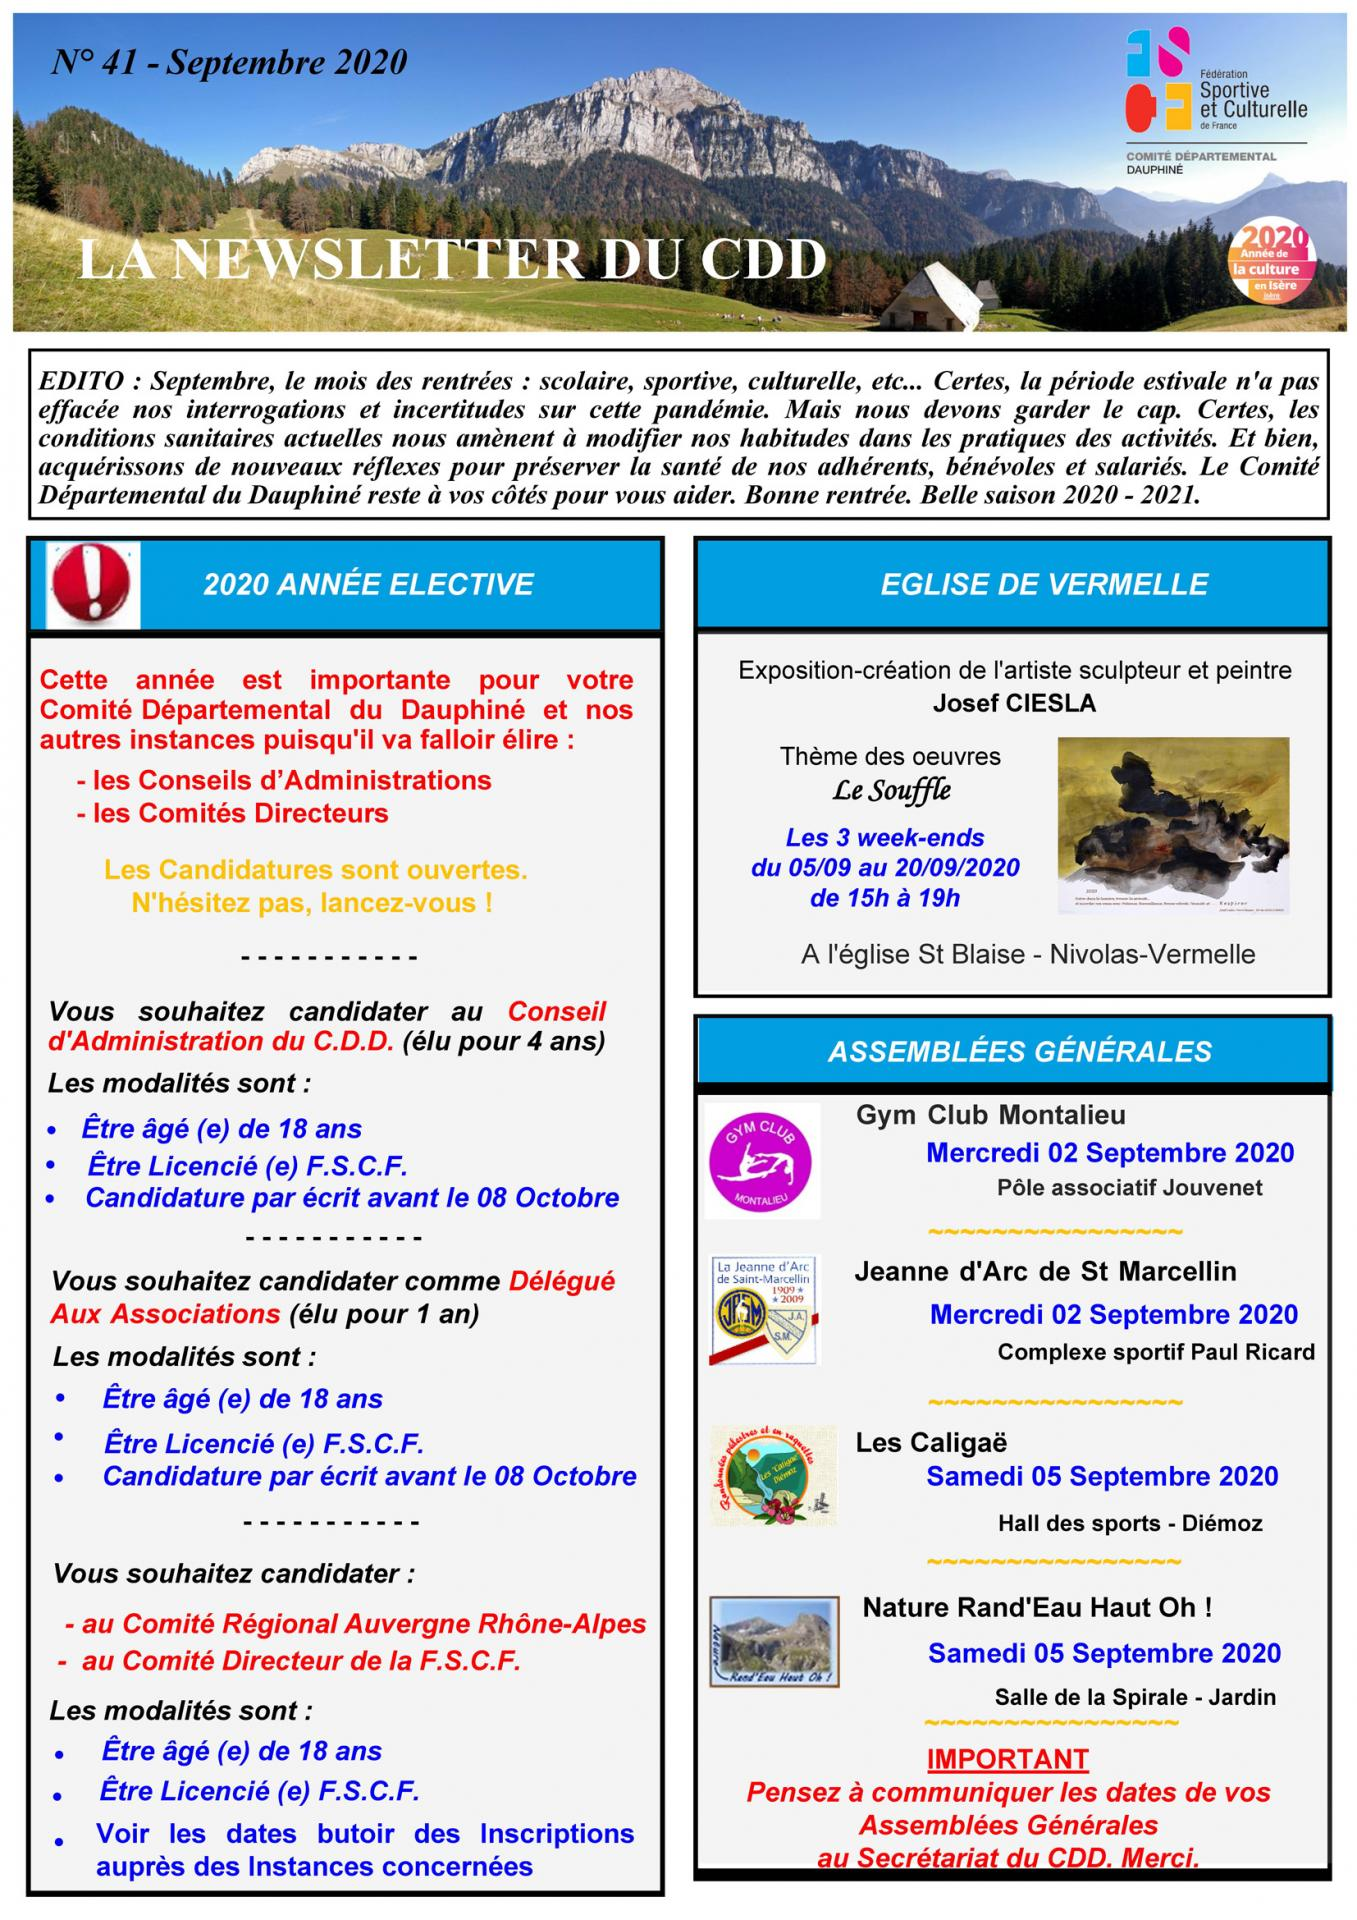 Newsletter n41 page 1